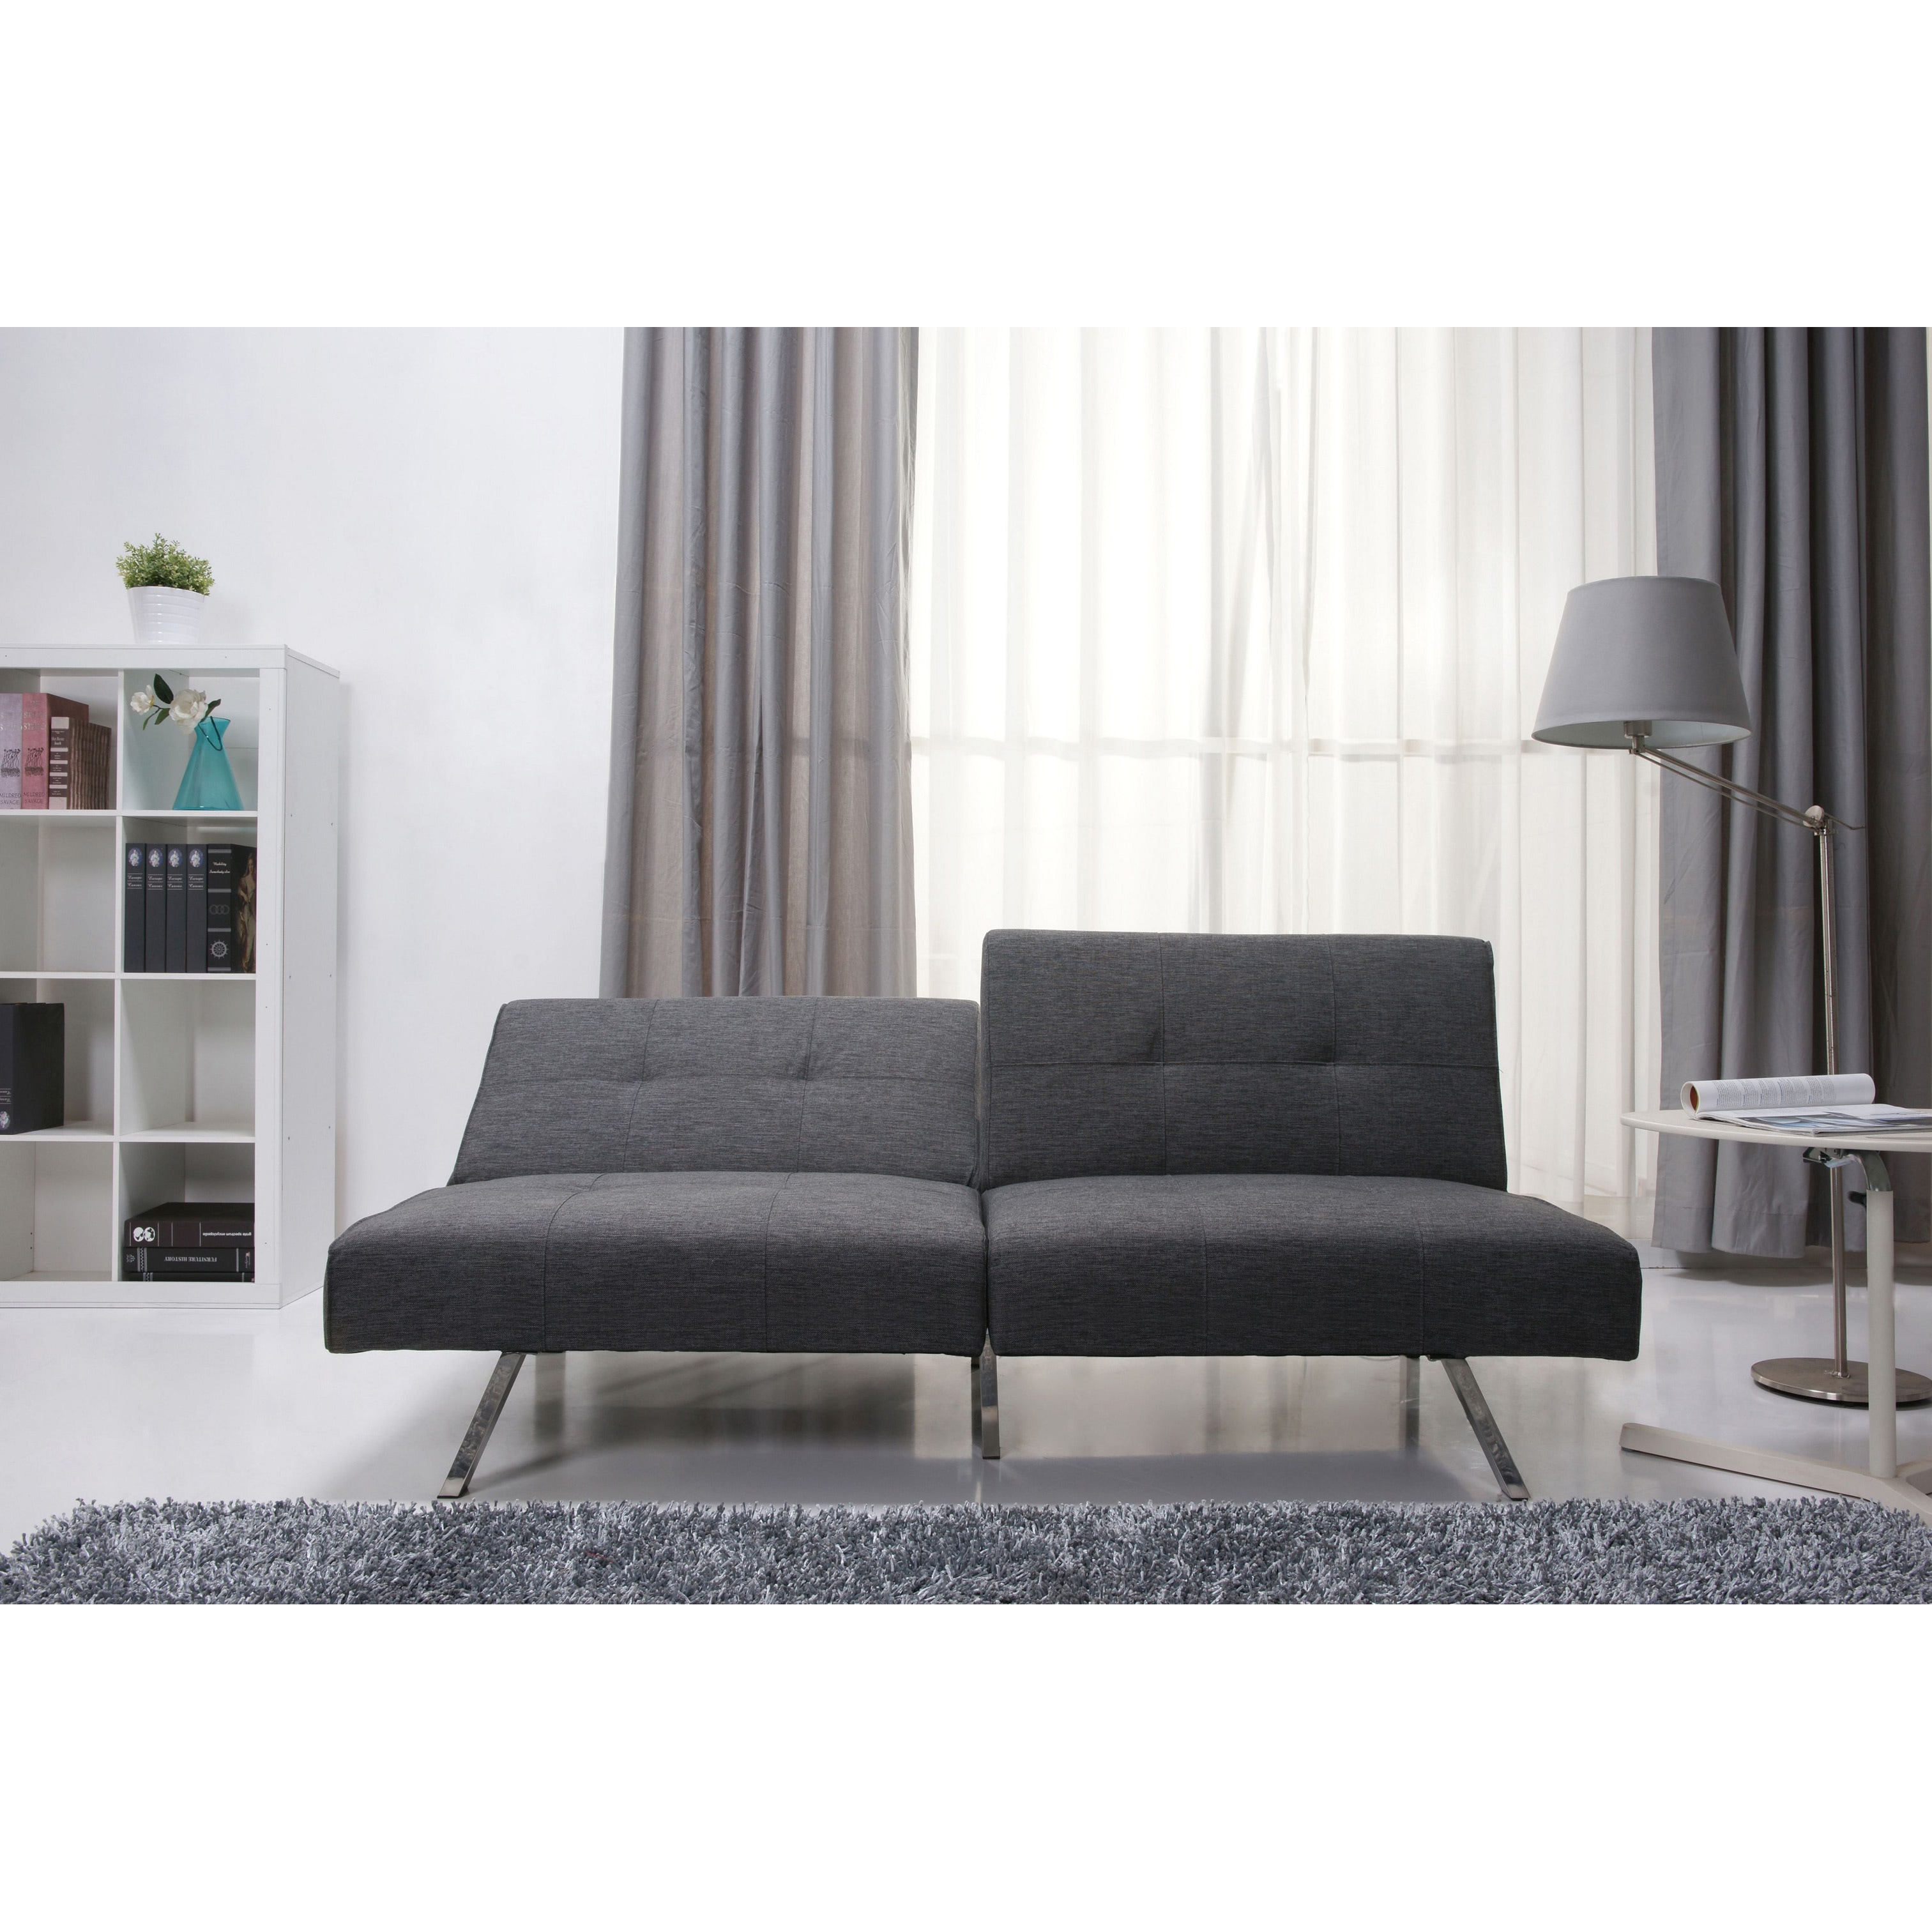 Shop Victorville Grey Foldable Futon Sofa Bed   Free Shipping Today    Overstock.com   10120848